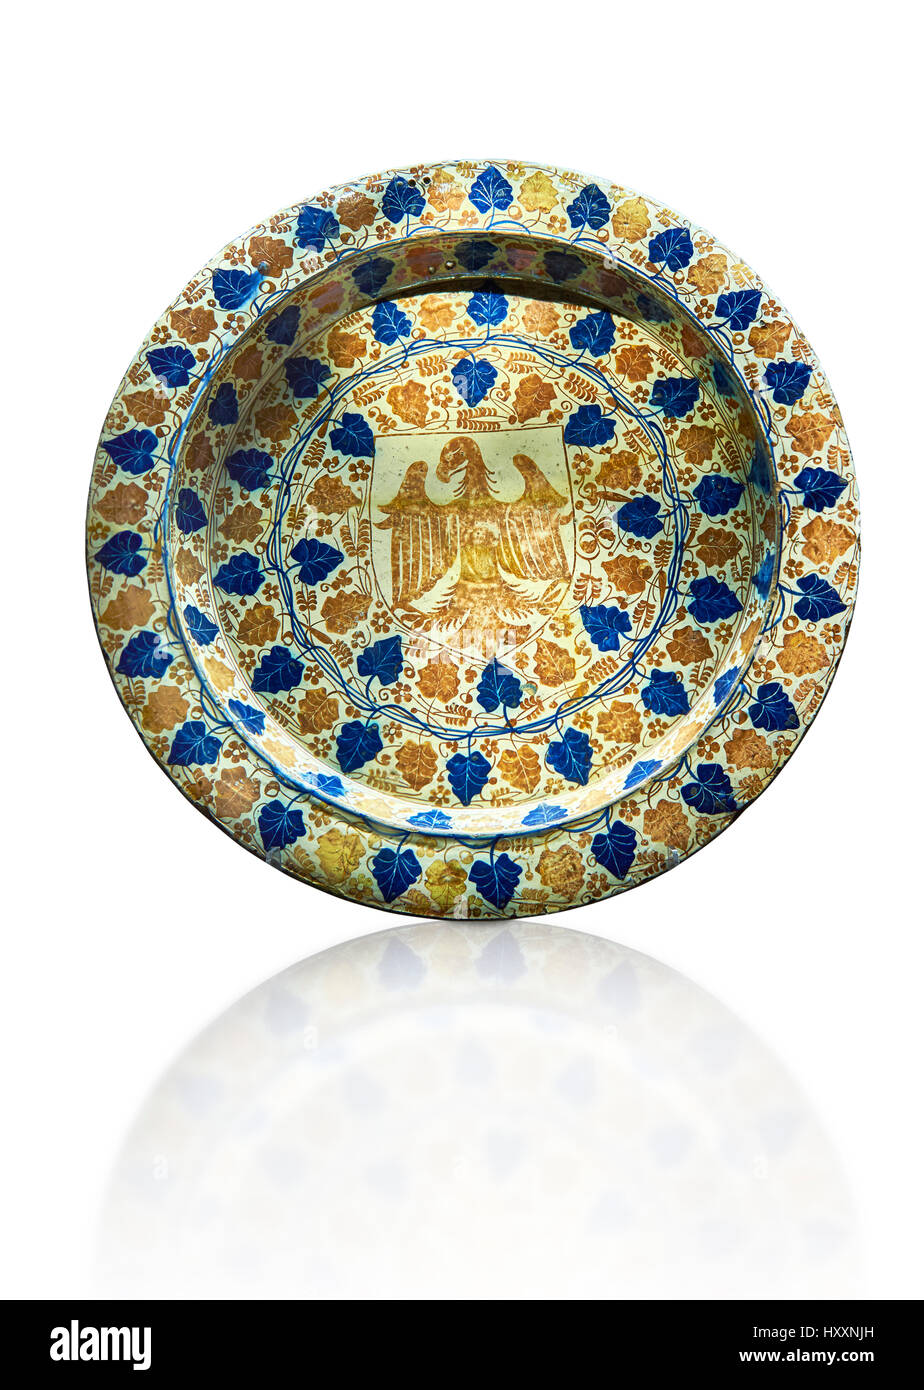 Hispano-Moresque ware dish with an eagle motif. Faience Islamic lustre ware, Manises, Al Andalus, late 14th century. - Stock Image